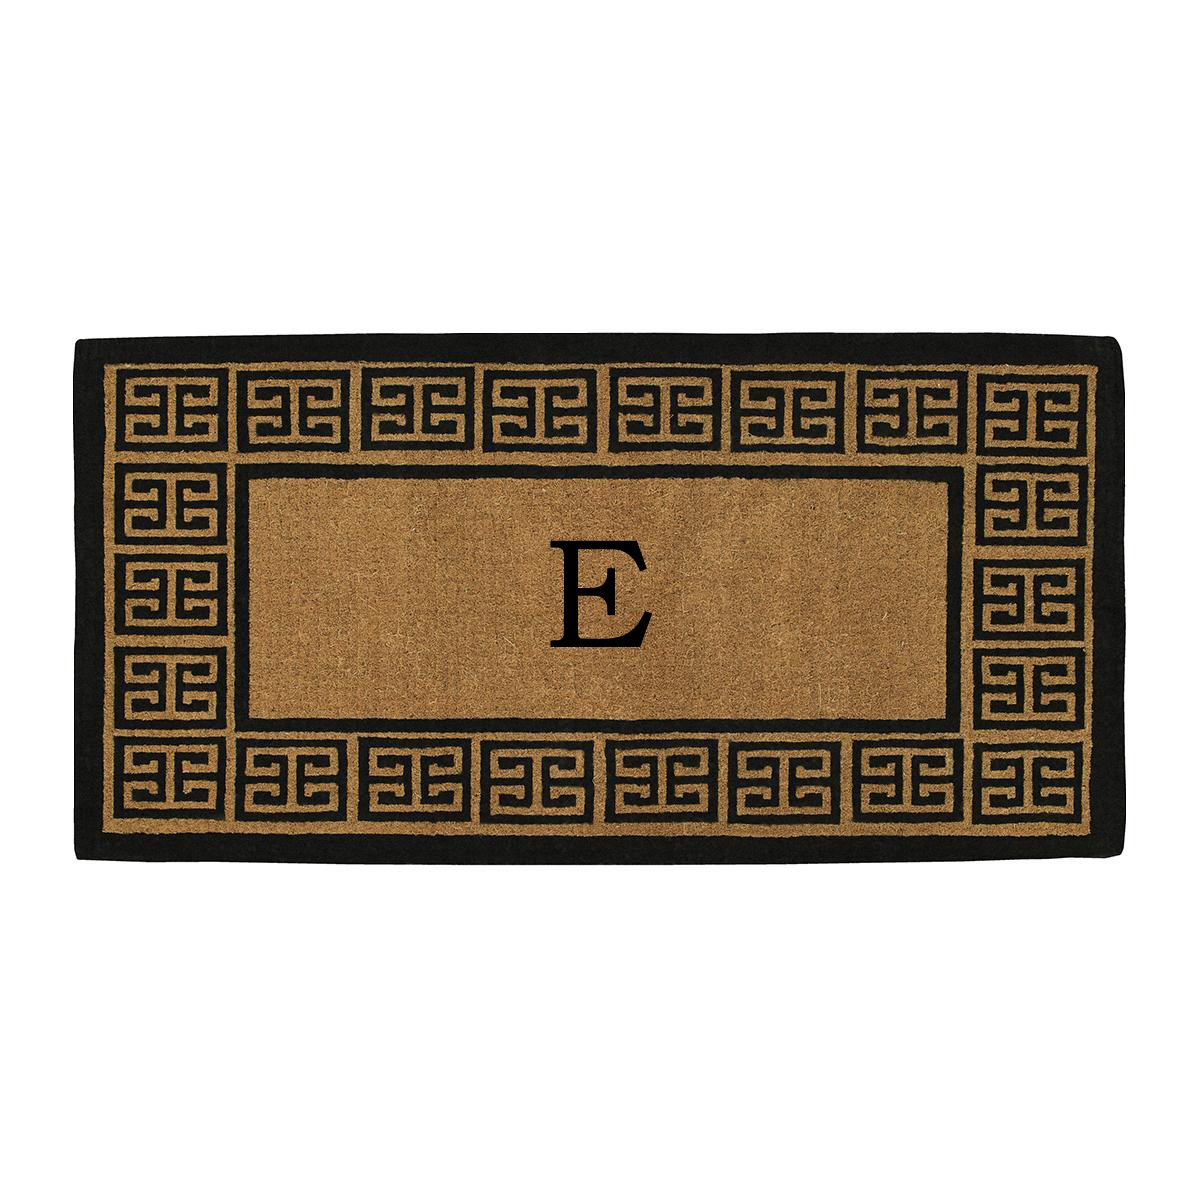 Home & More 180093672E The Grecian Extra-thick Doormat, 36'' x 72'' x 1.50'', Monogrammed Letter E, Natural/Black by Home & More